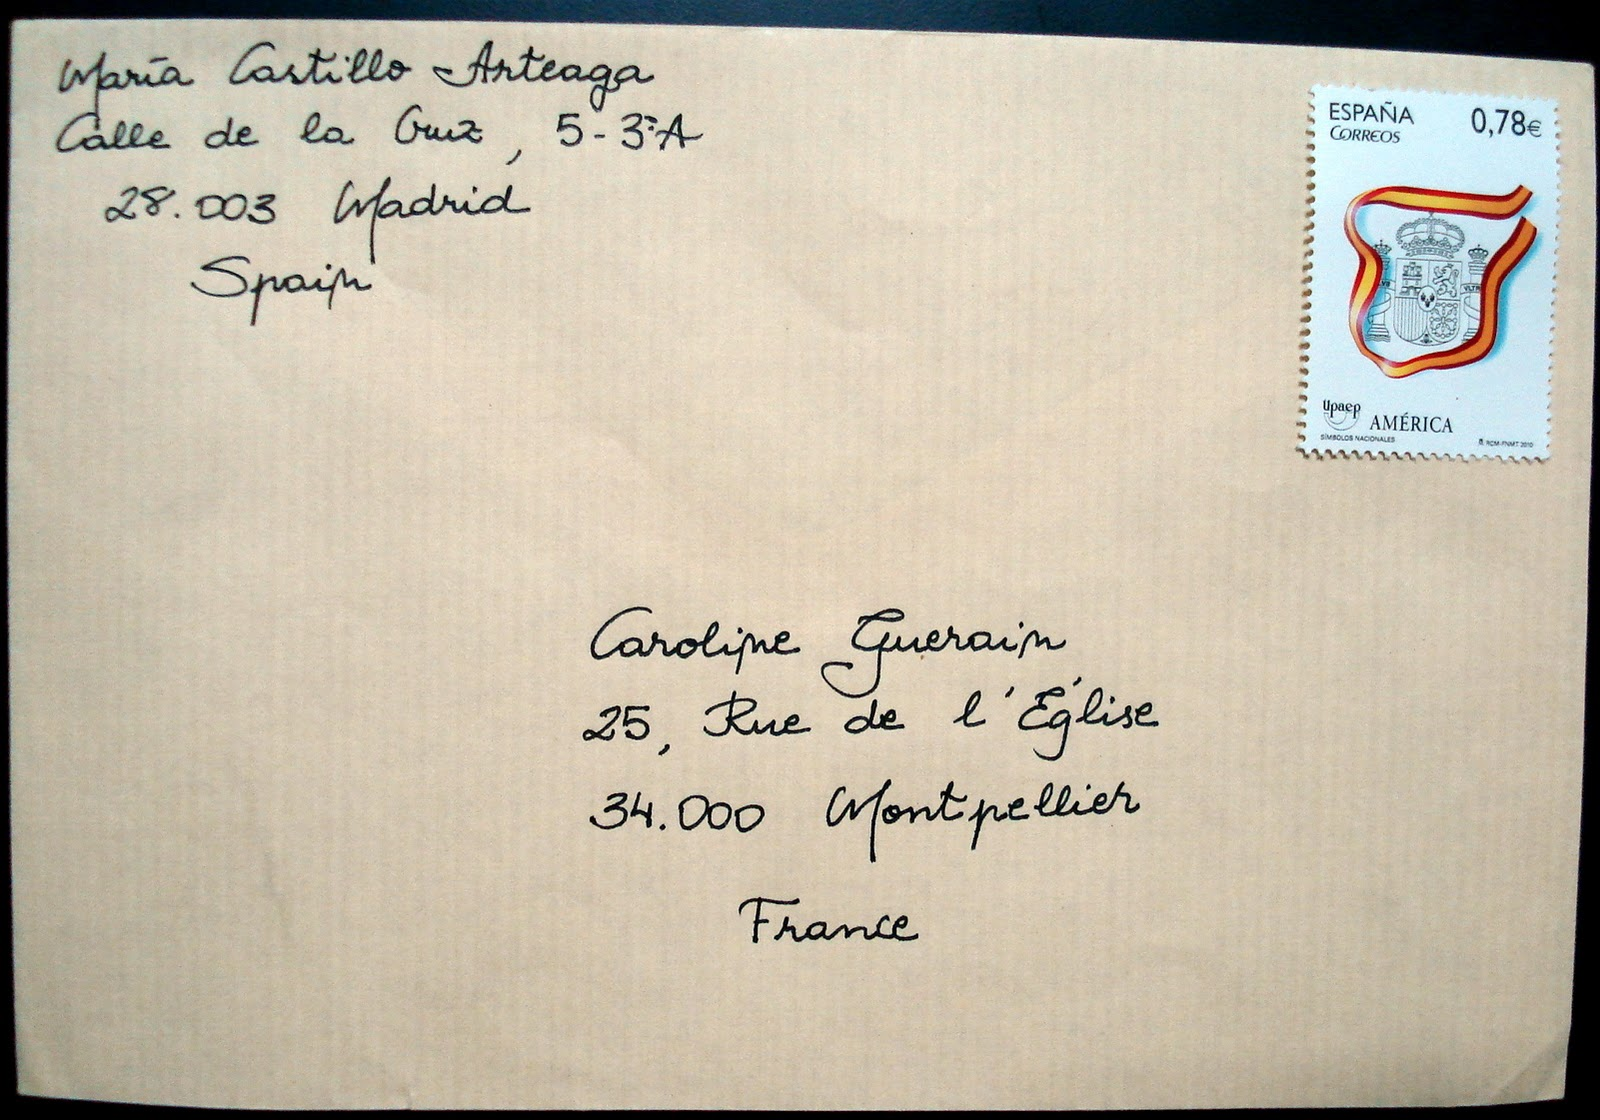 Envelope writing address